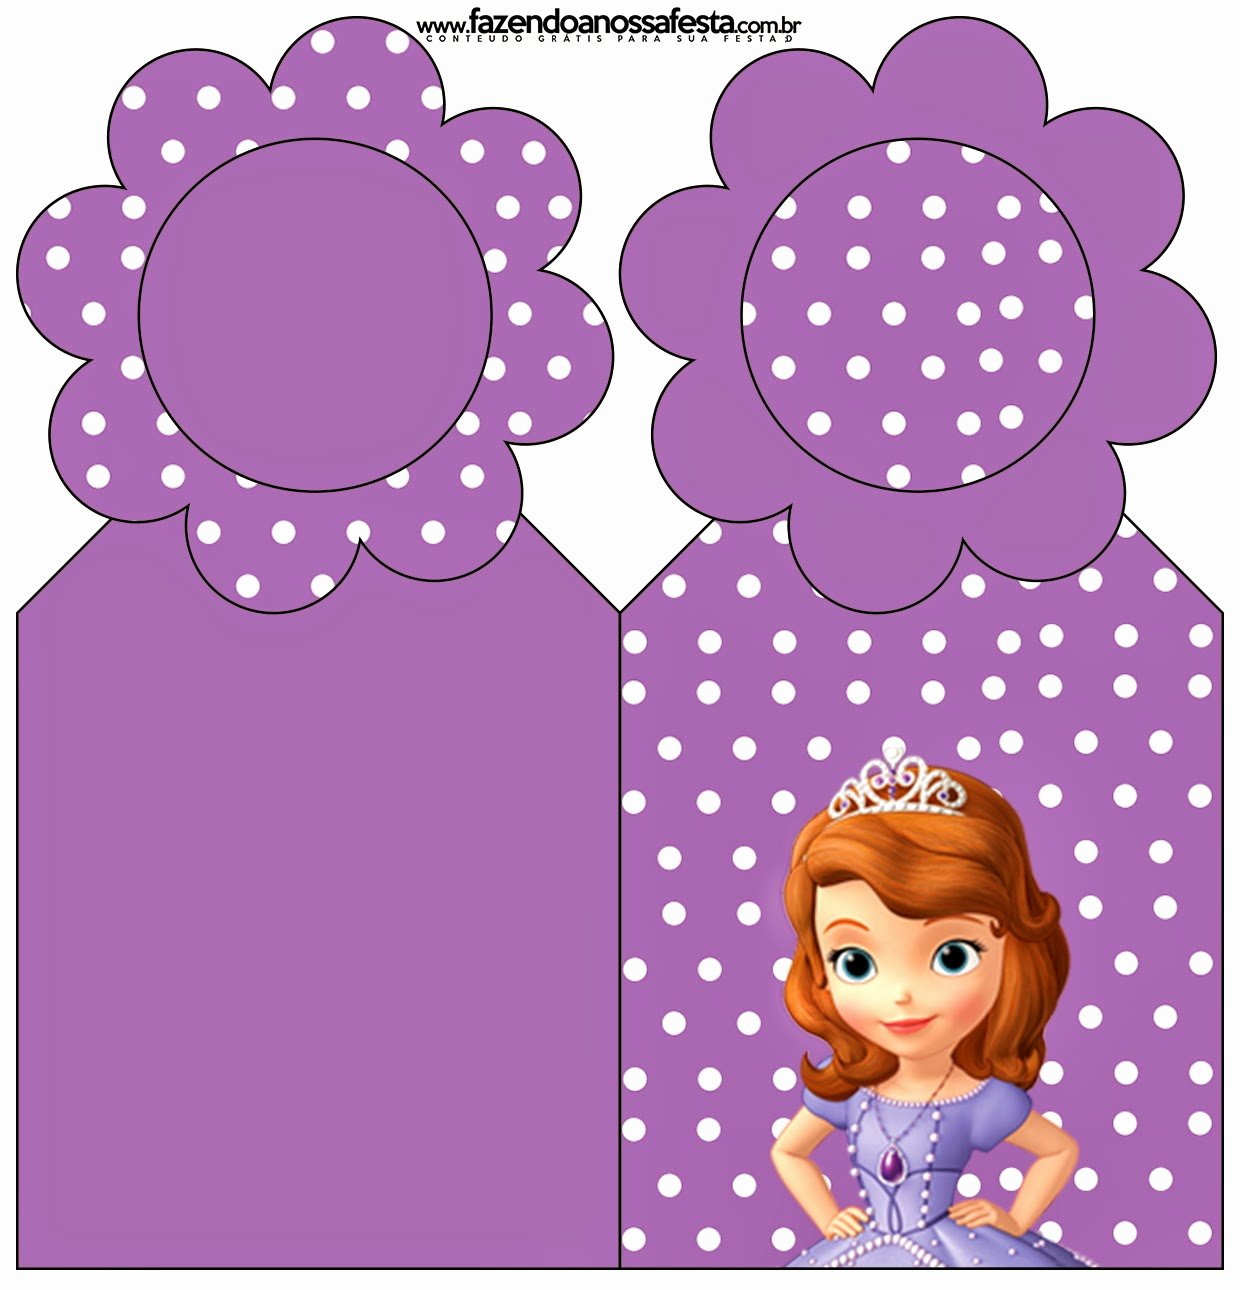 Sofia the First Template Beautiful sofia the First Free Party Printables and